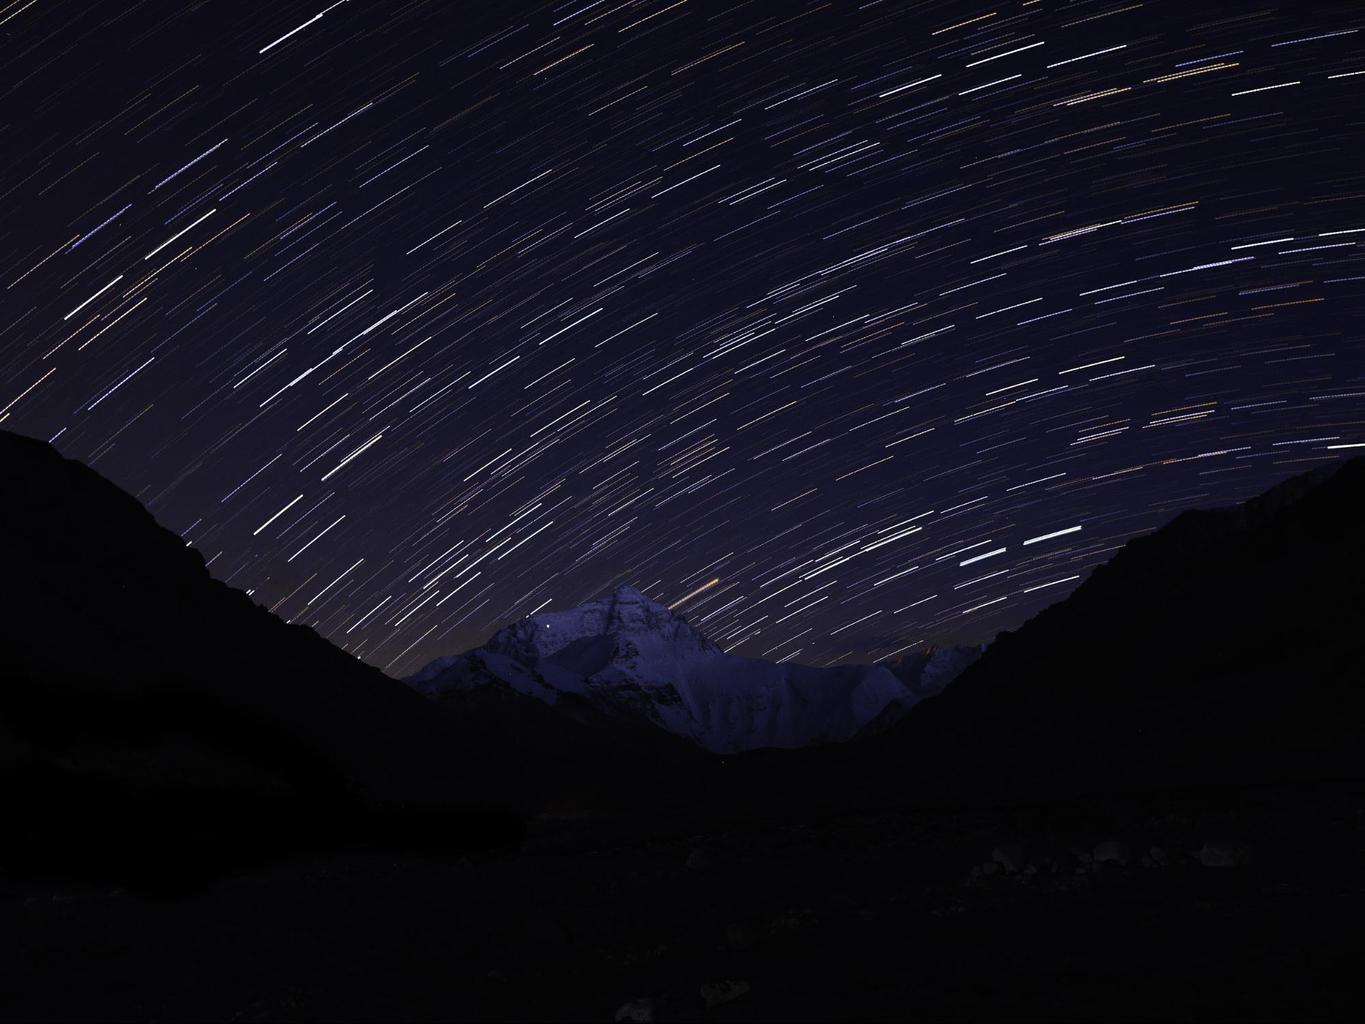 Star trails above Everest from the Tibetan based camp